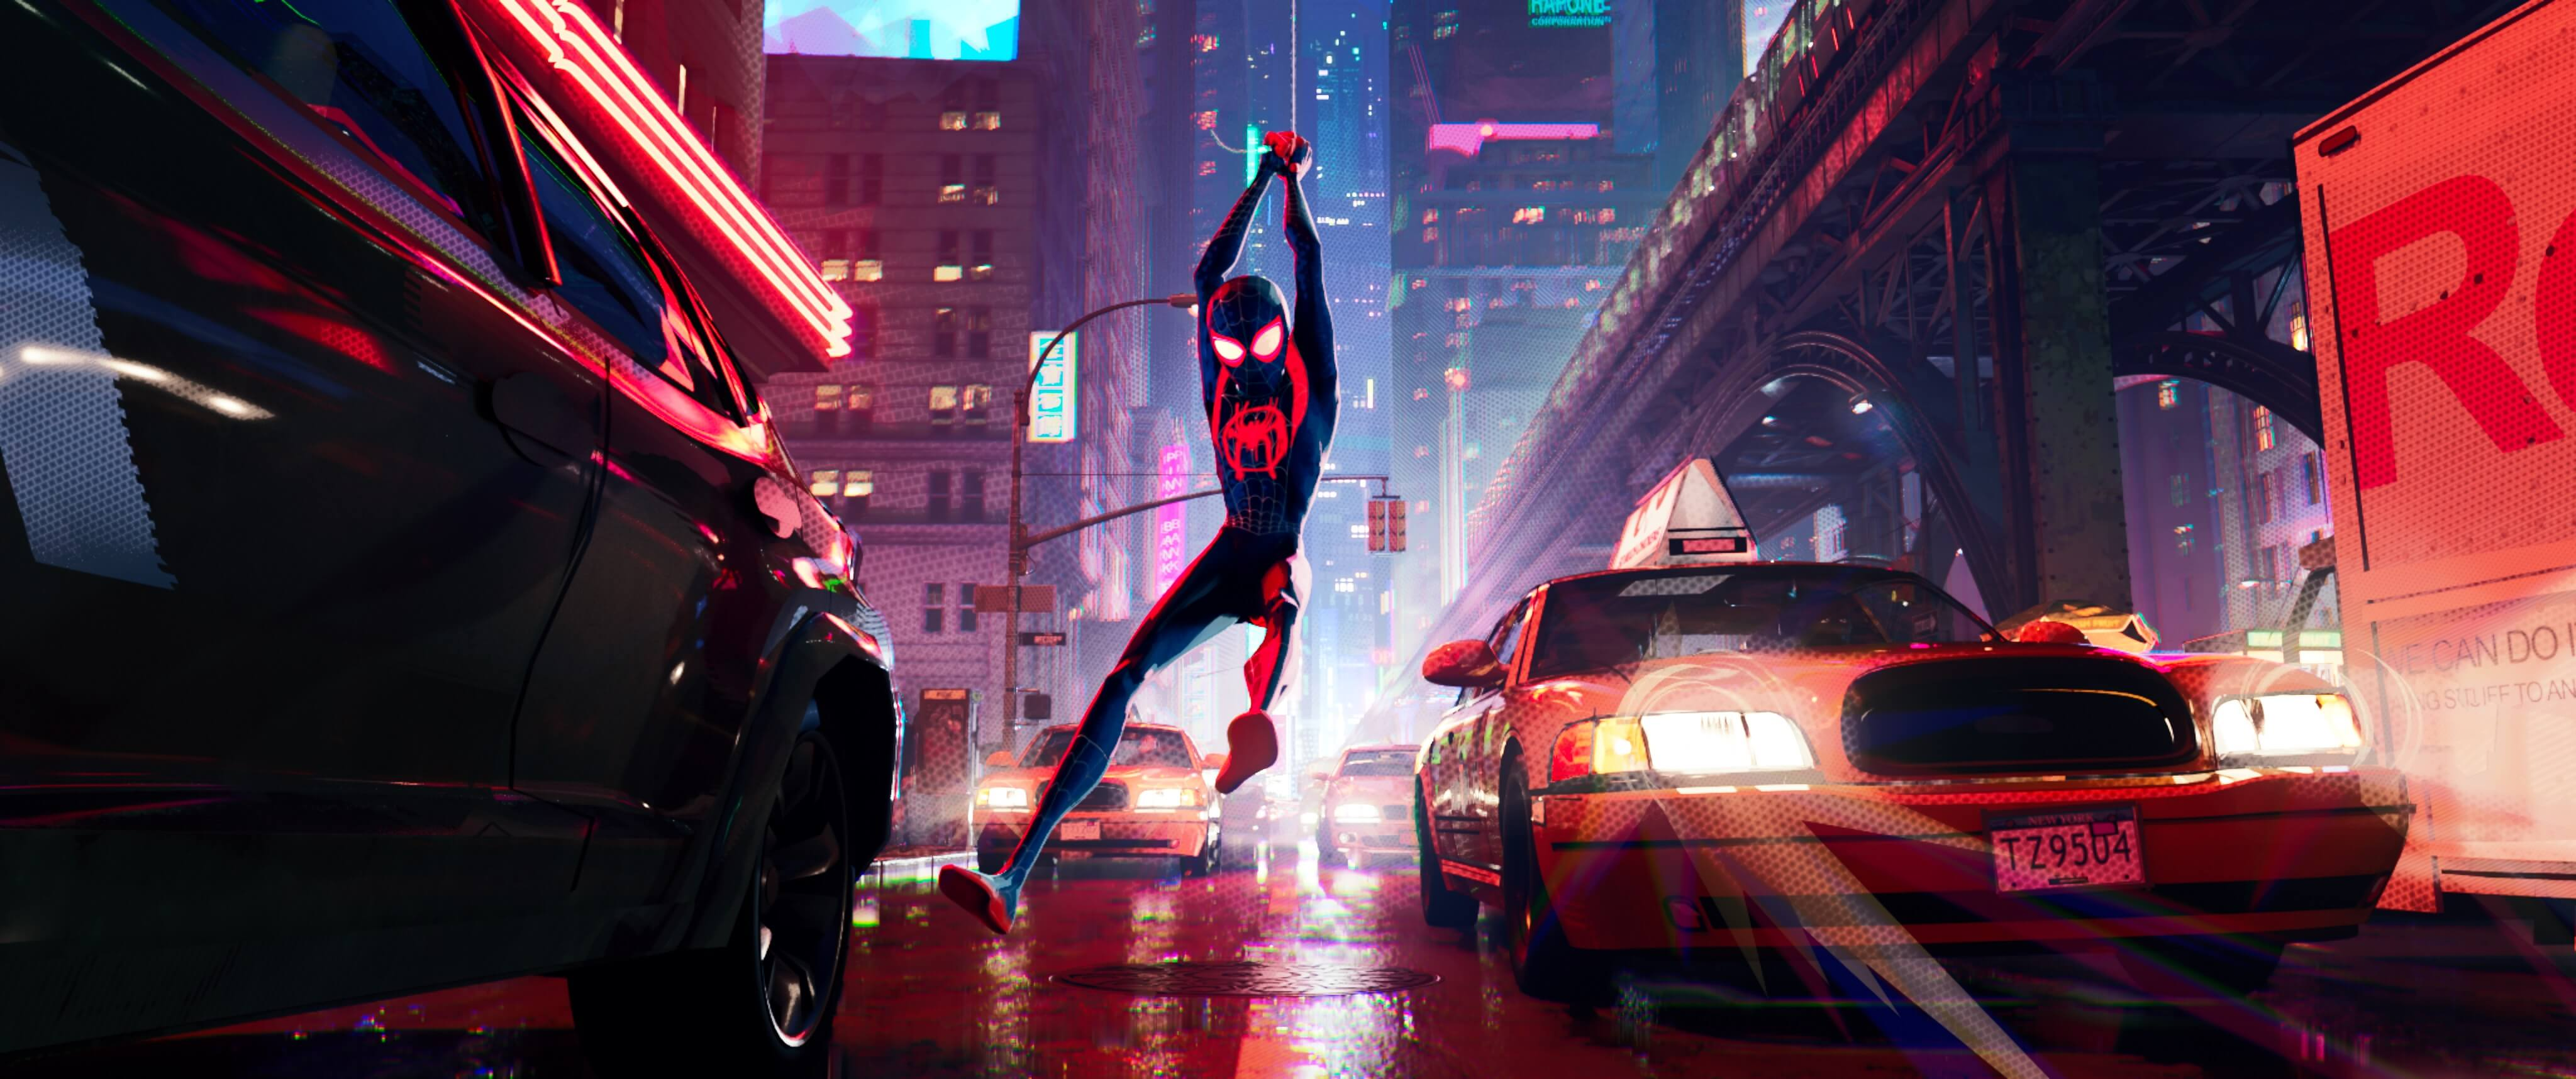 spiderverse_trlb795-1015_dh_v2-2